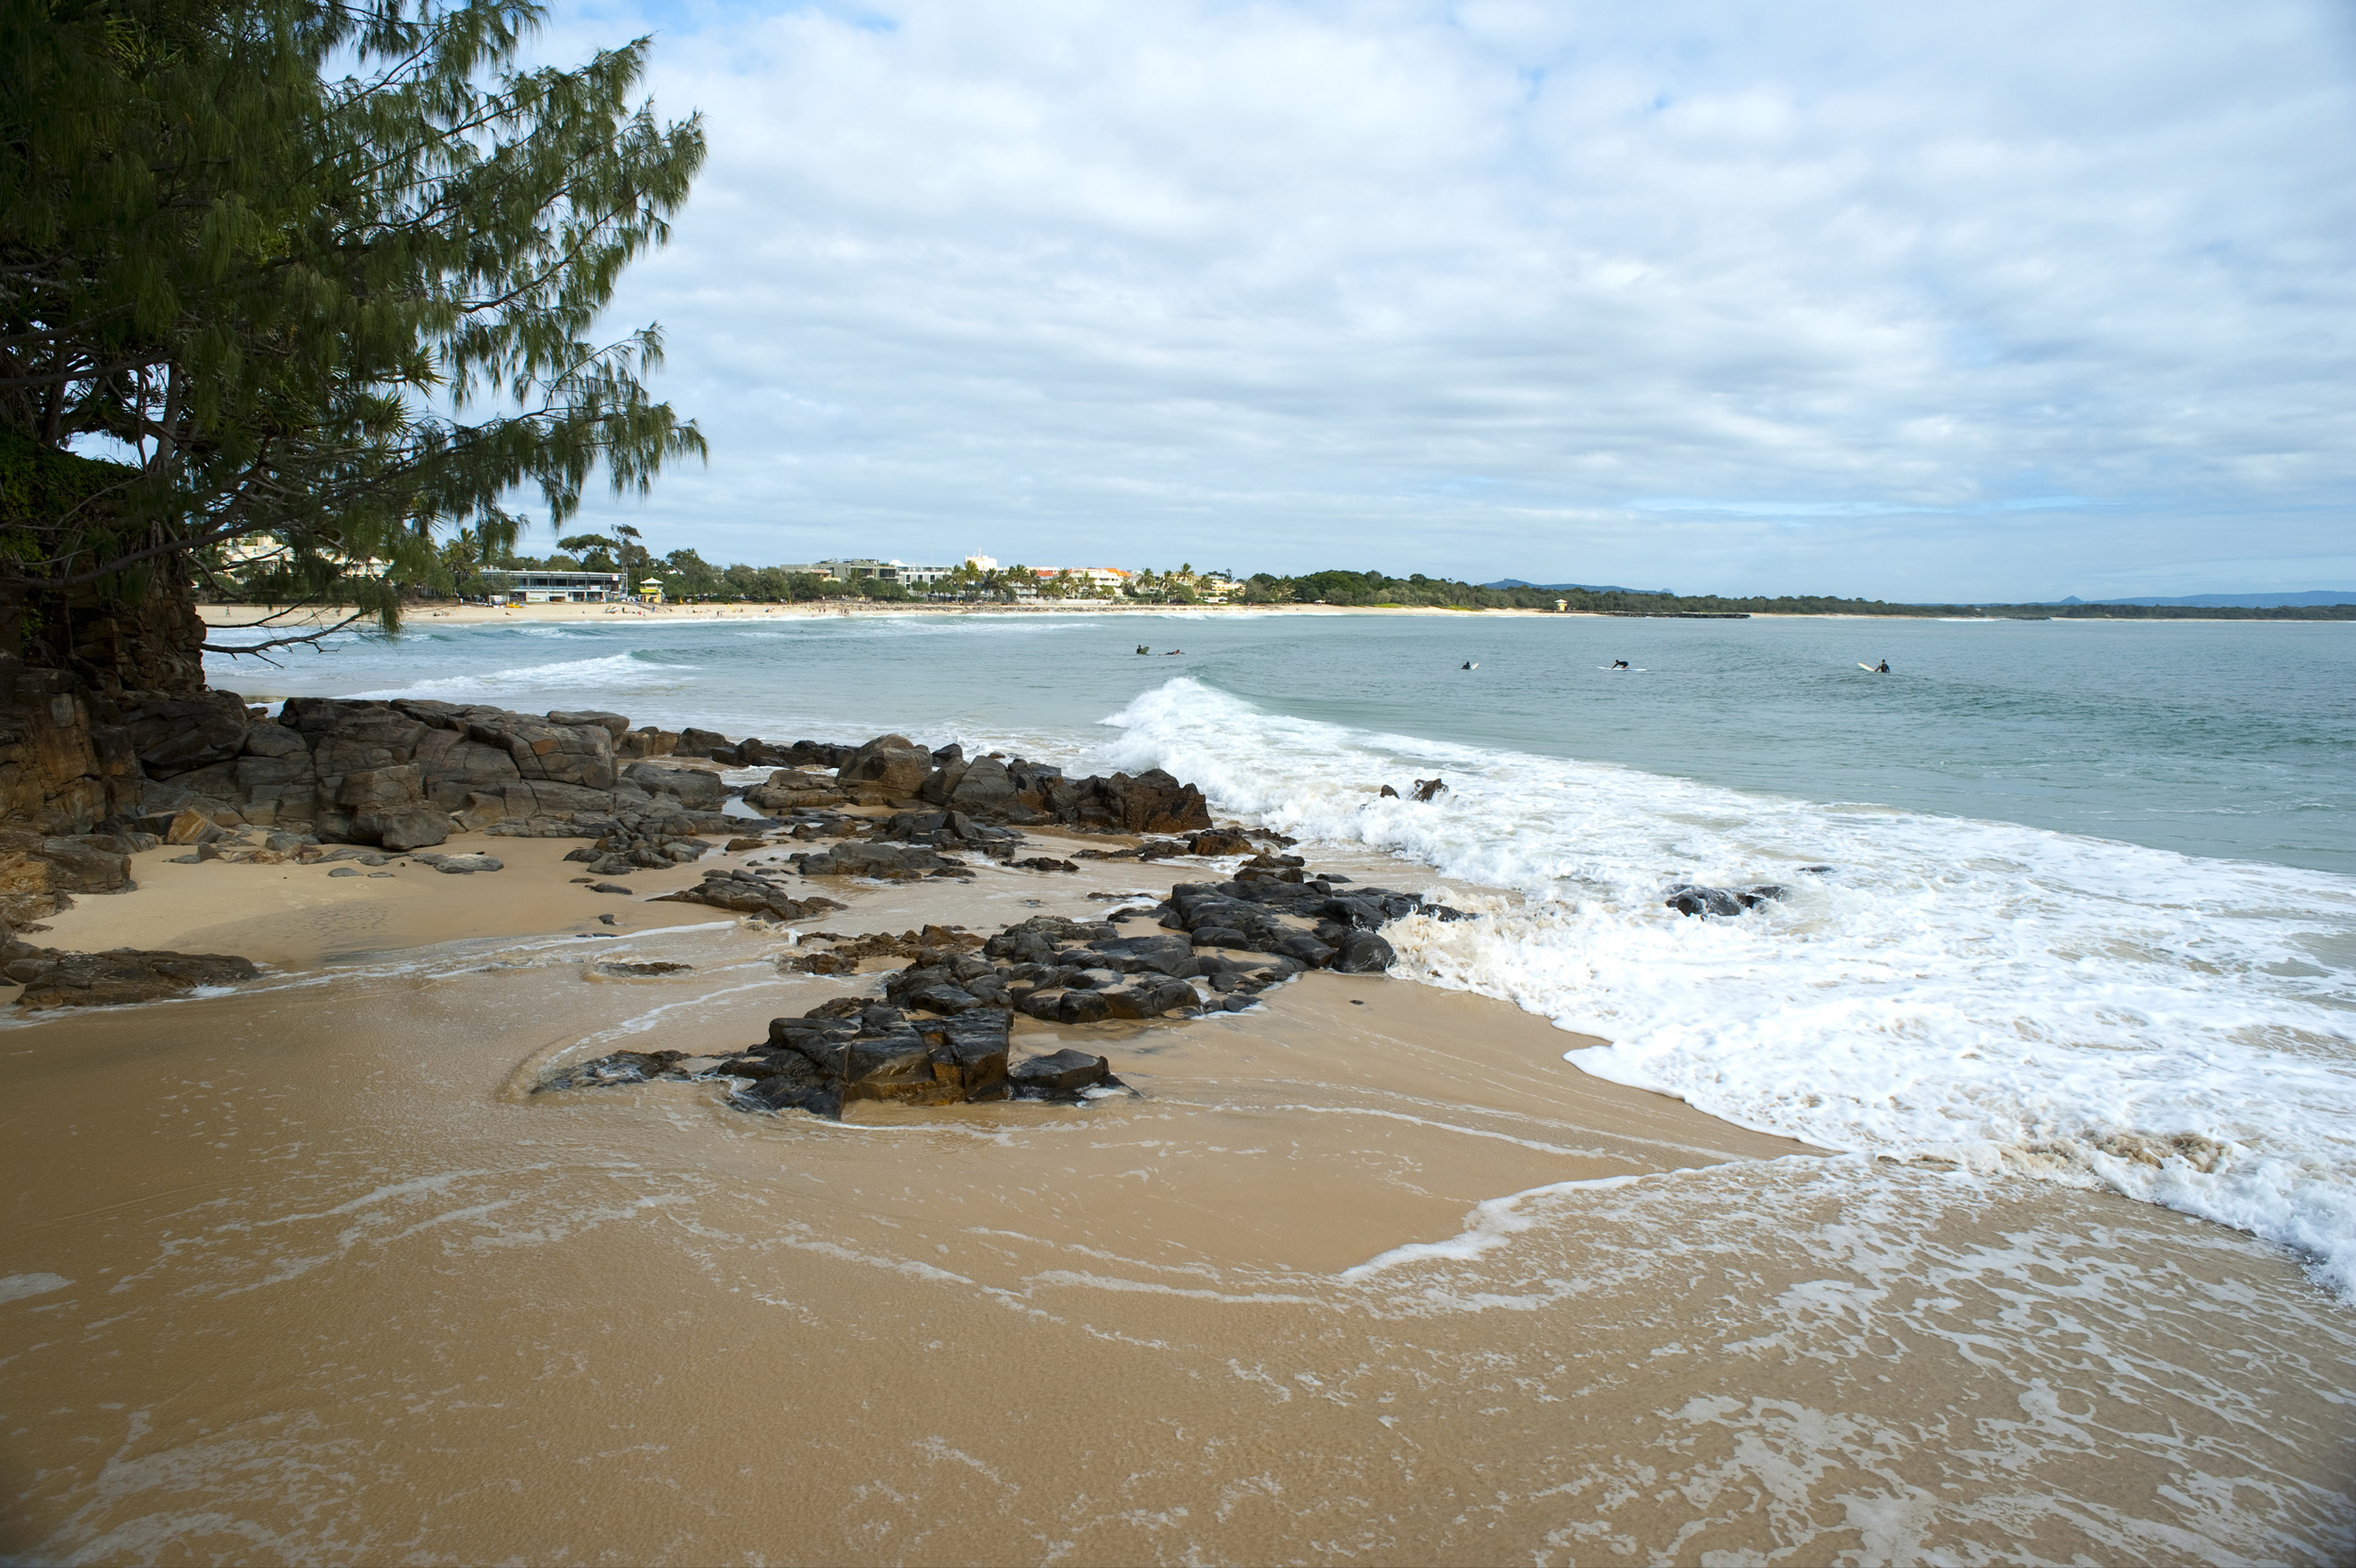 Rocky shoreline with golden sand at Noosa beach in Queensland, Australia, a popular tourist resort and destination for surfers